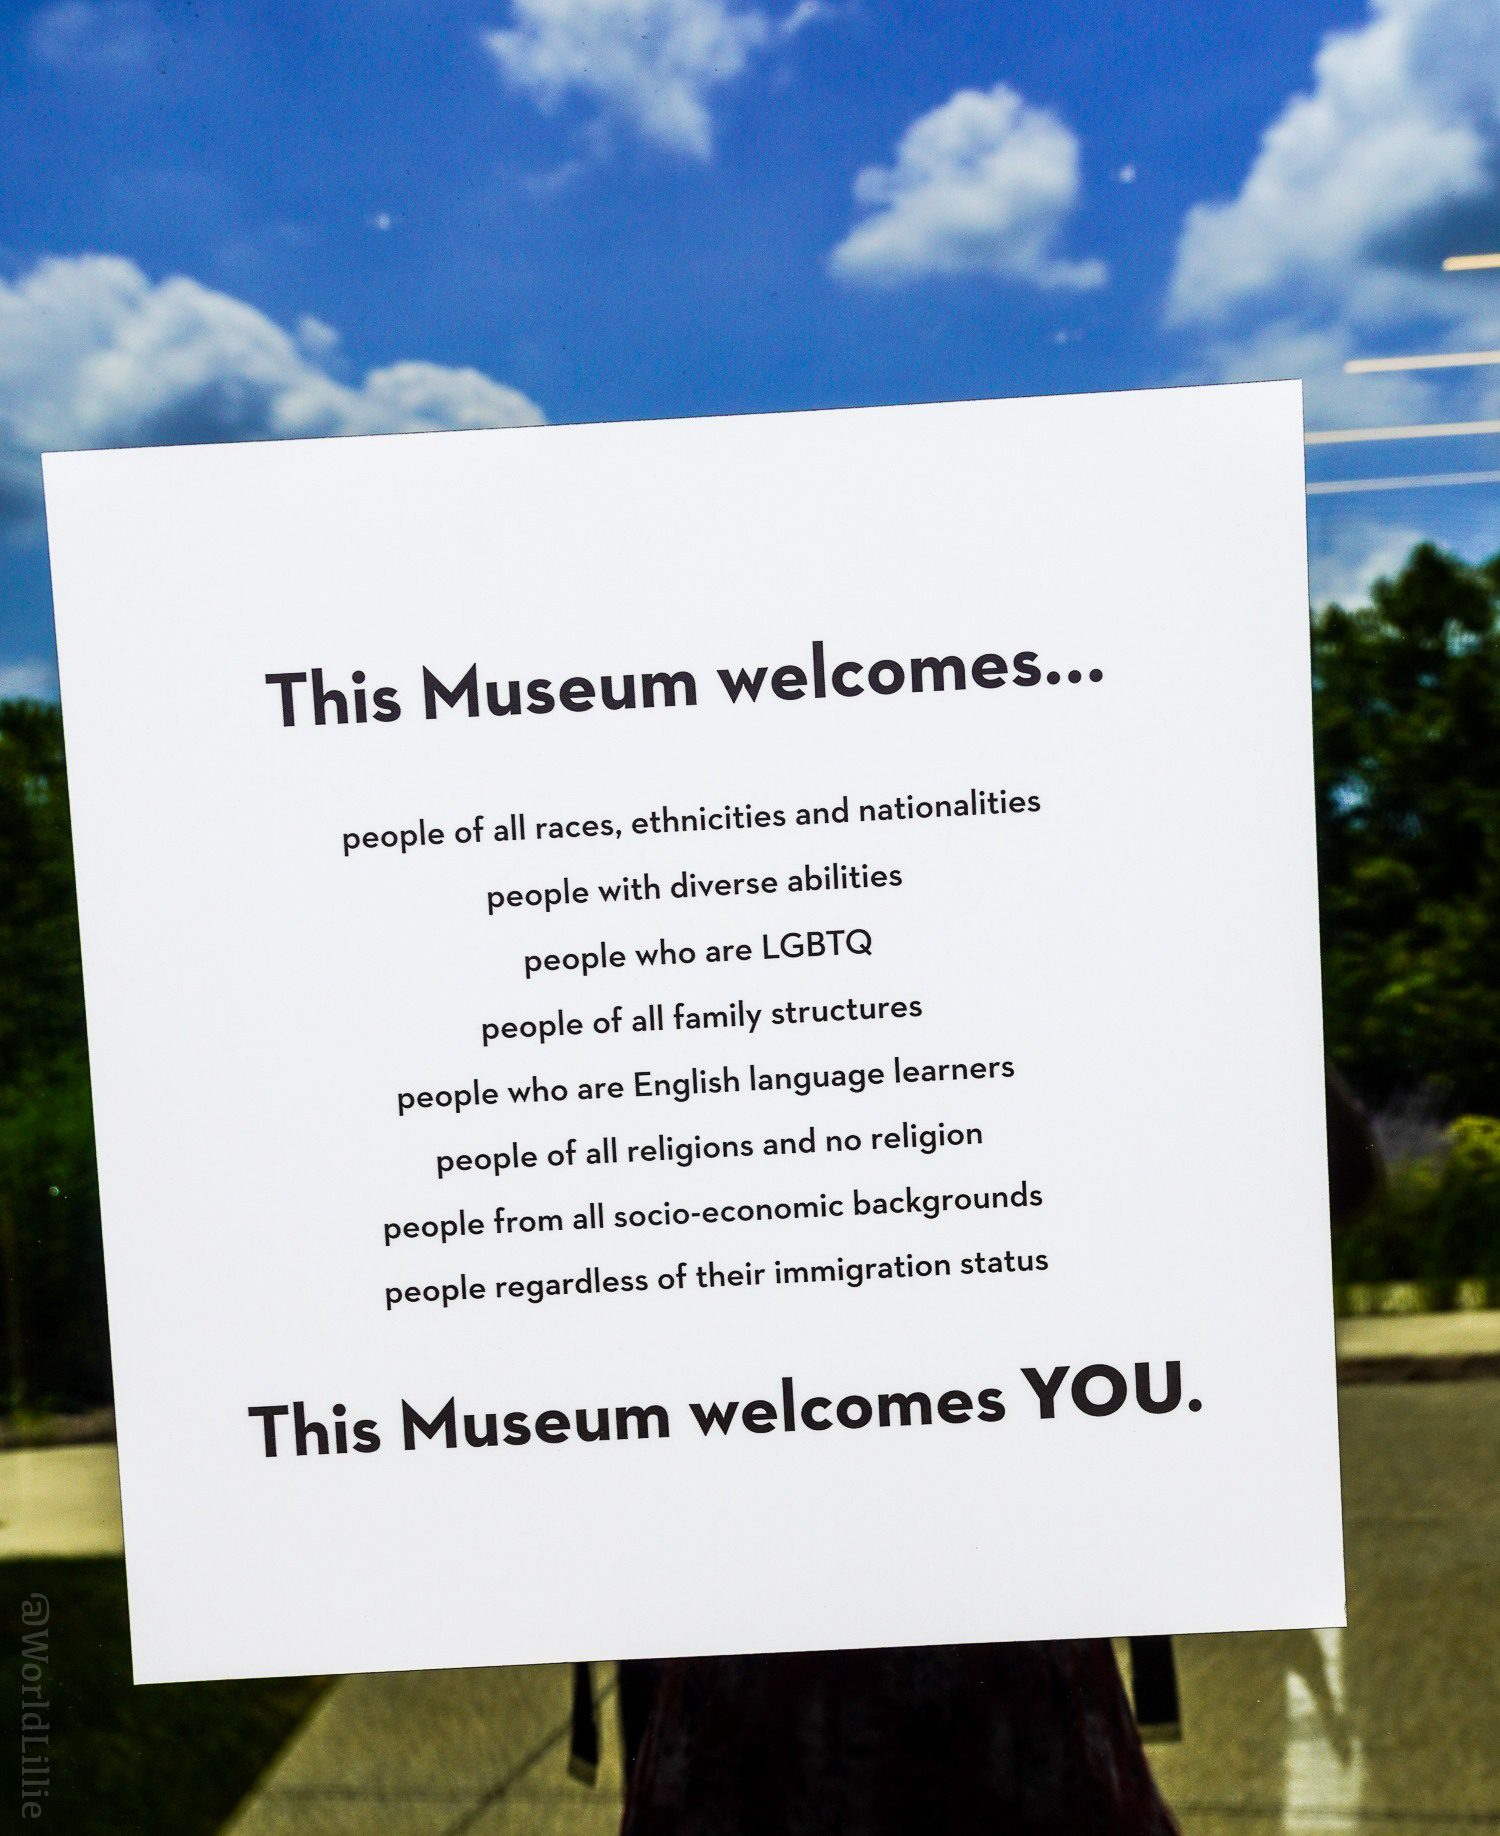 This museum welcomes YOU